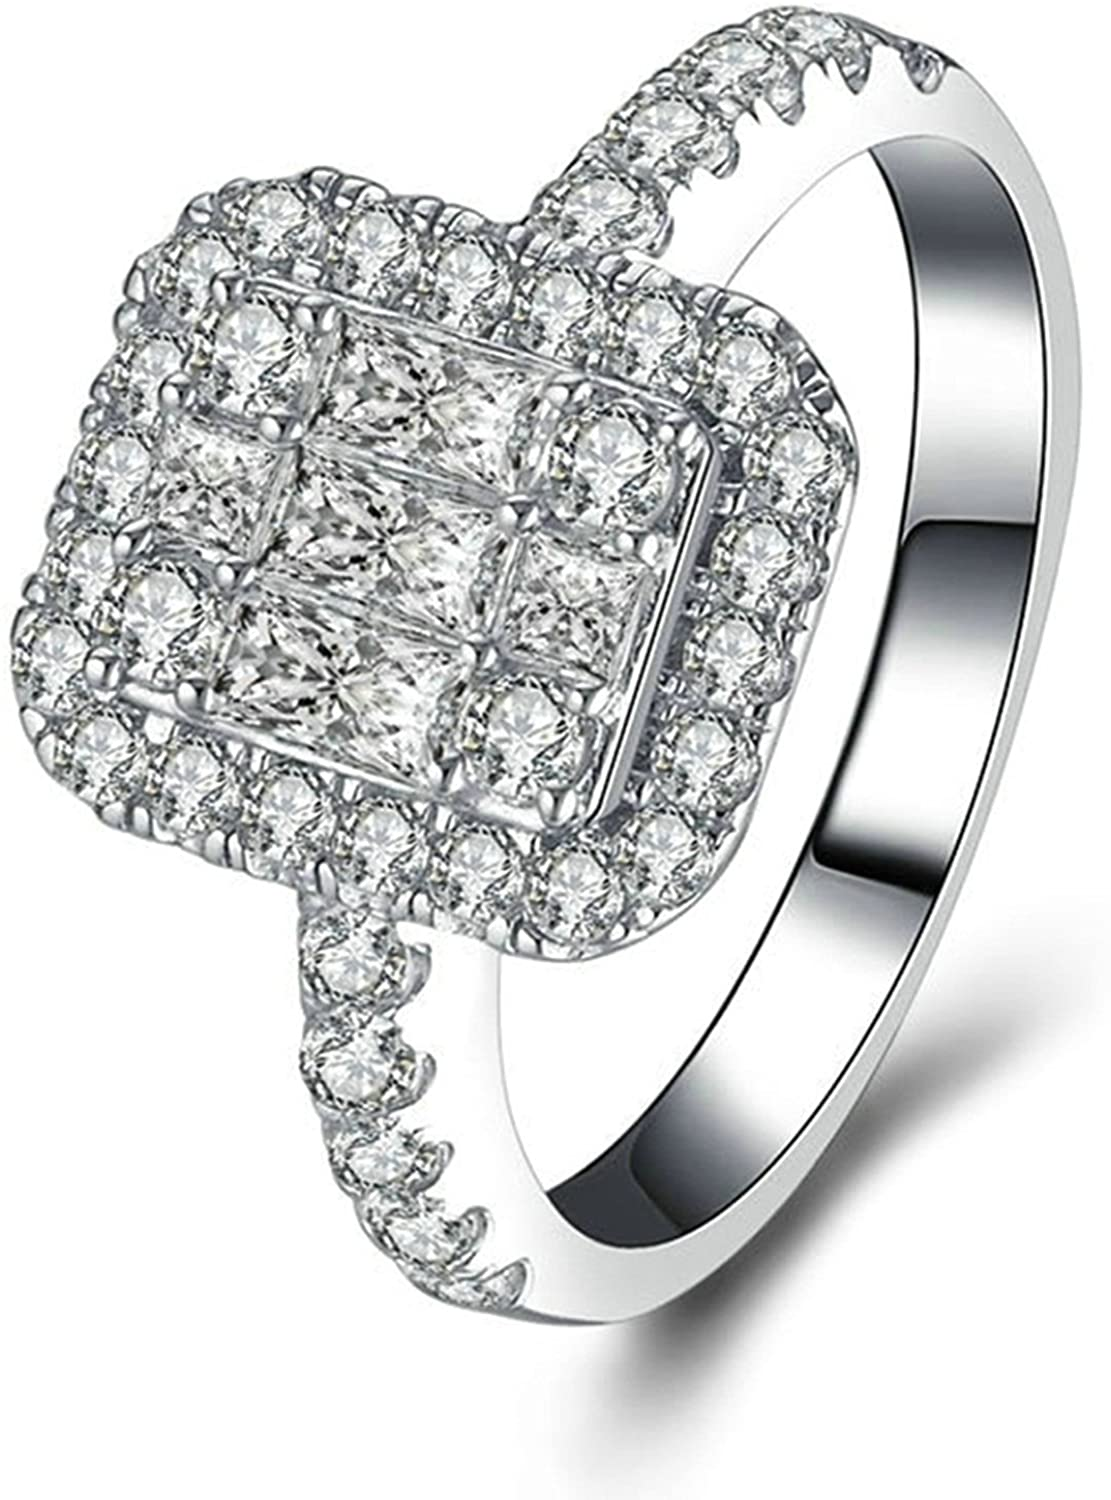 AMDXD Sterling Silver Rings for Women Emerald & Round Cut White Cubic Zirconia Promise Ring for Her